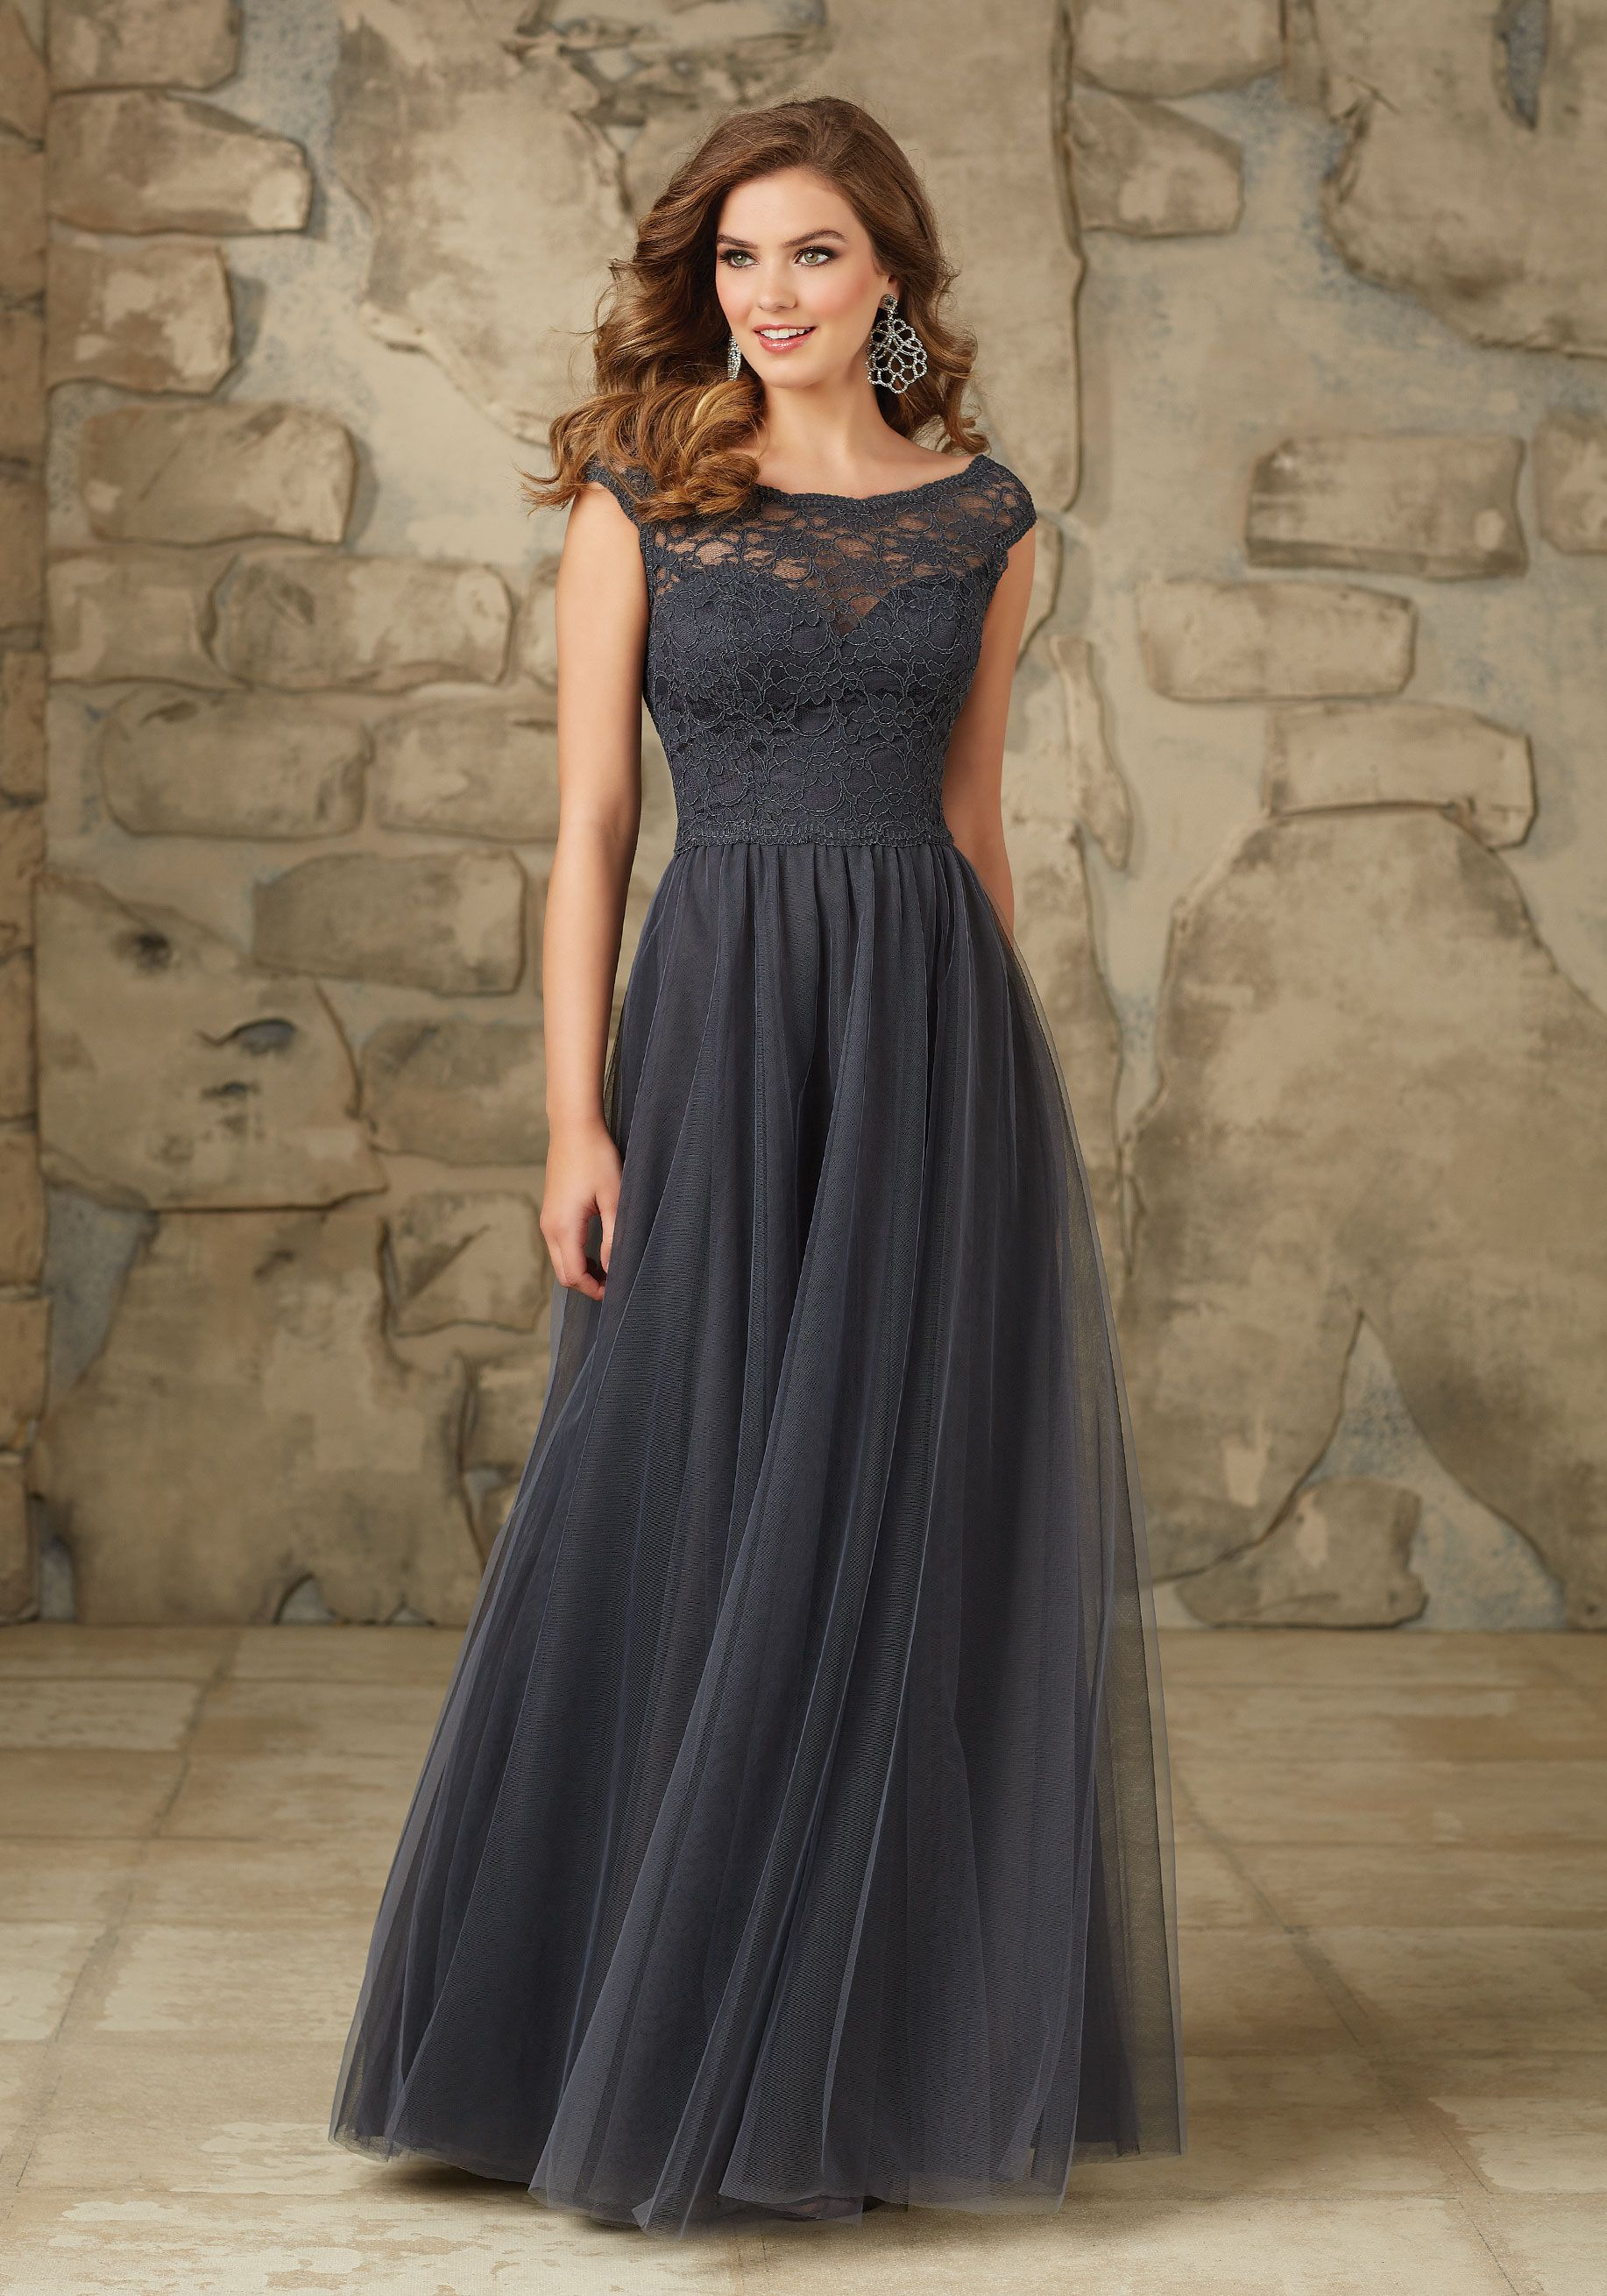 99a5bee932 Long and Elegant Lace and Tulle Bridesmaid Dress in Grey. Cap sleeves.  Morilee | Madeline Gardner Style 111.